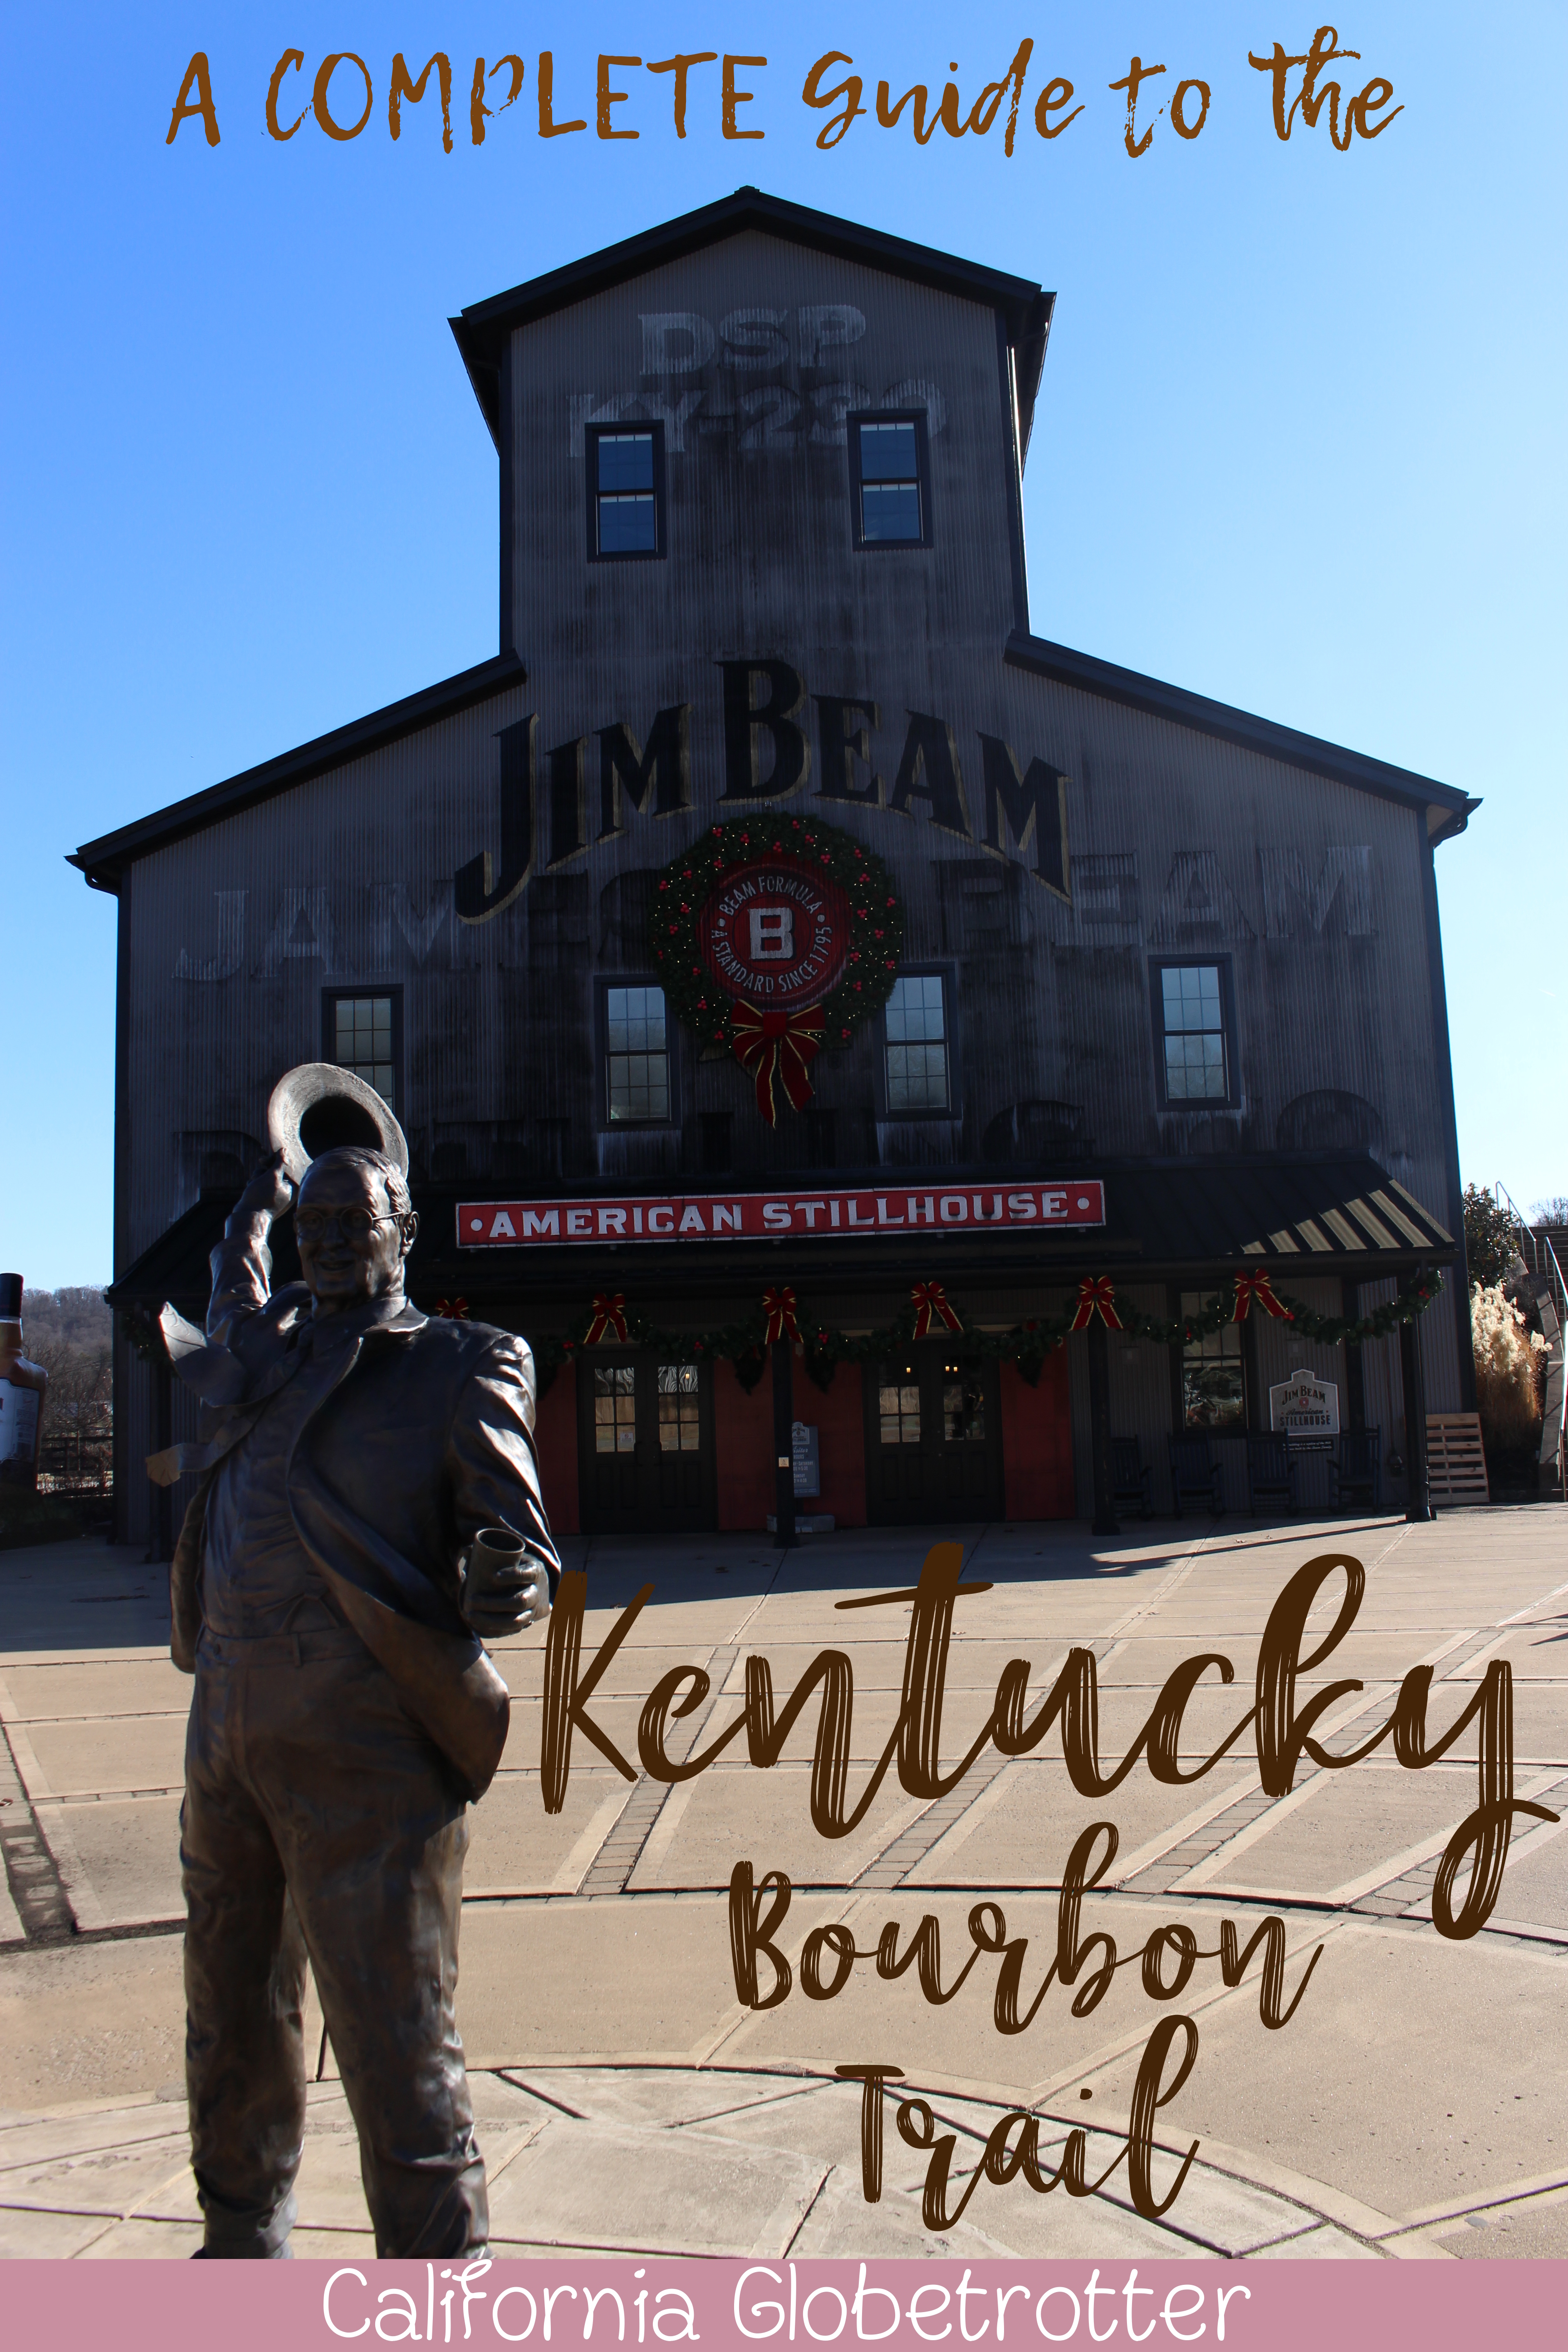 The COMPLETE Guide to the Kentucky Bourbon Trail | #KYBourbon | Kentucky Bourbon Distilleries | Bourbon Trail Passport | Top Kentucky Bourbon Distilleries | Bourbon Distilleries | Bourbon Trail Distilleries | Bourbon Distilleries in Kentucky | Bourbon Trail Tours | Follow the Kentucky Bourbon Trail | What to do in Kentucky | Things to do in Kentucky |#Kentucky | #Bourbon -  California Globetrotter